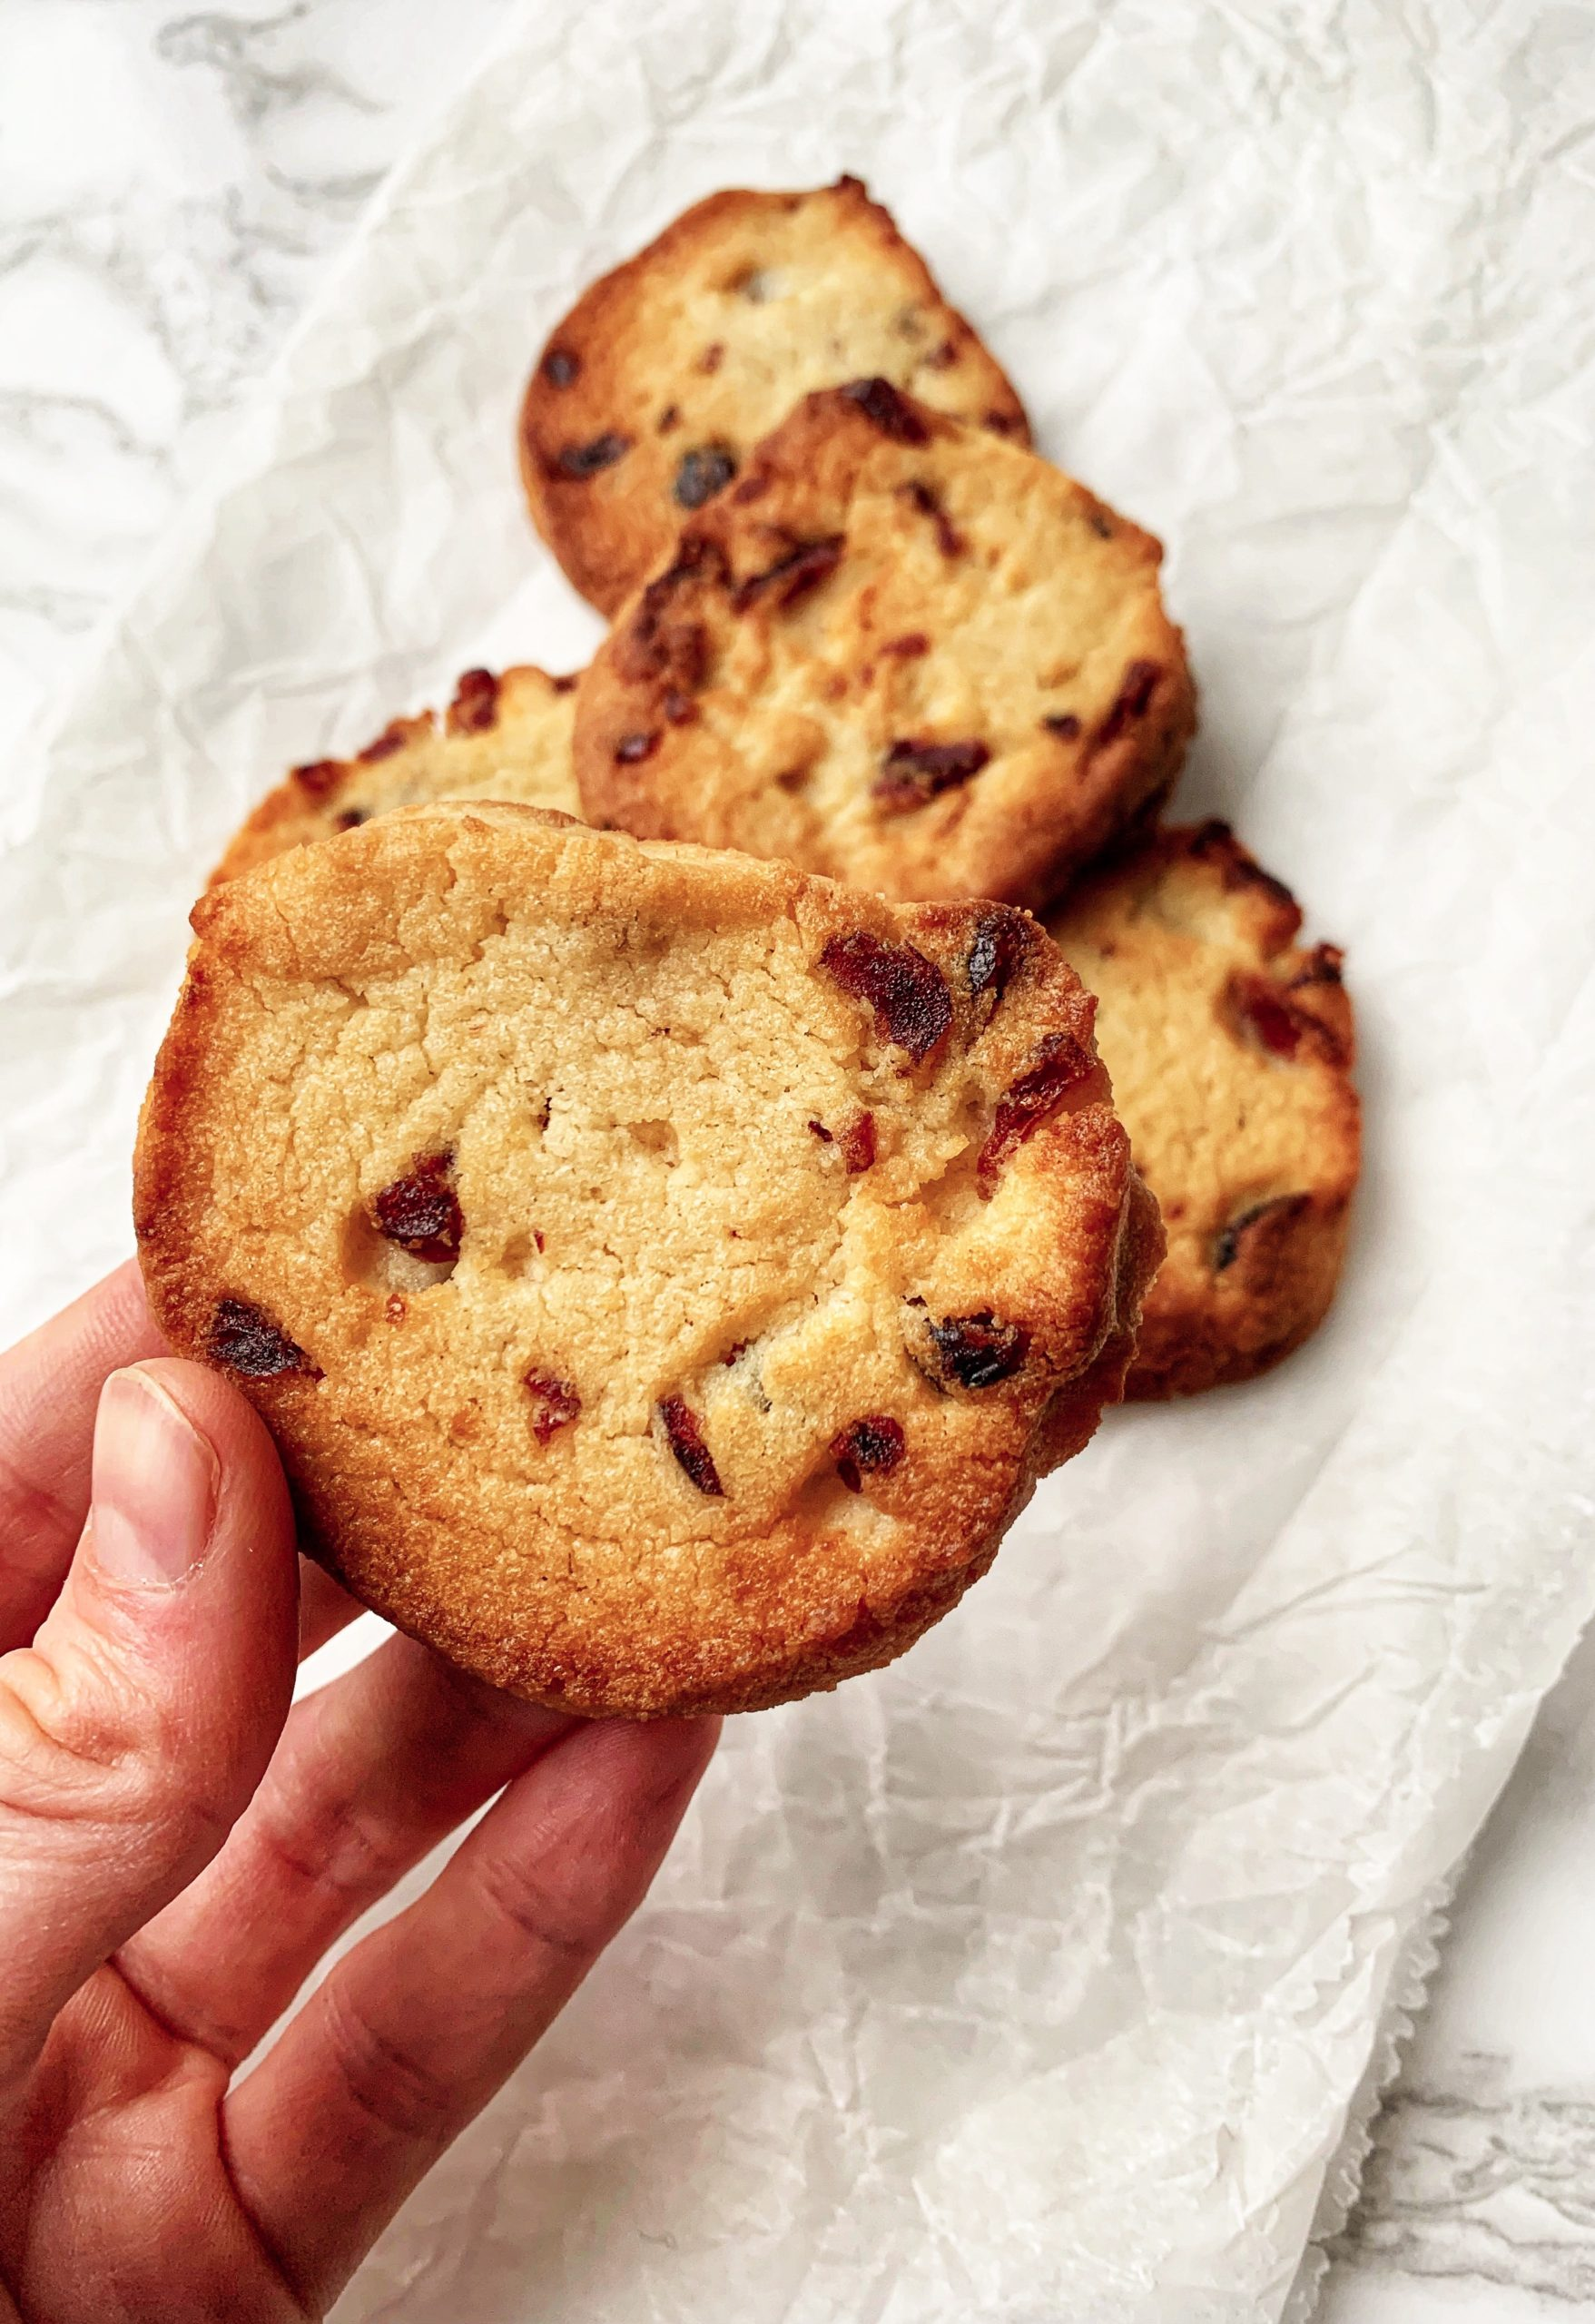 Picture of keto cookie in a hand